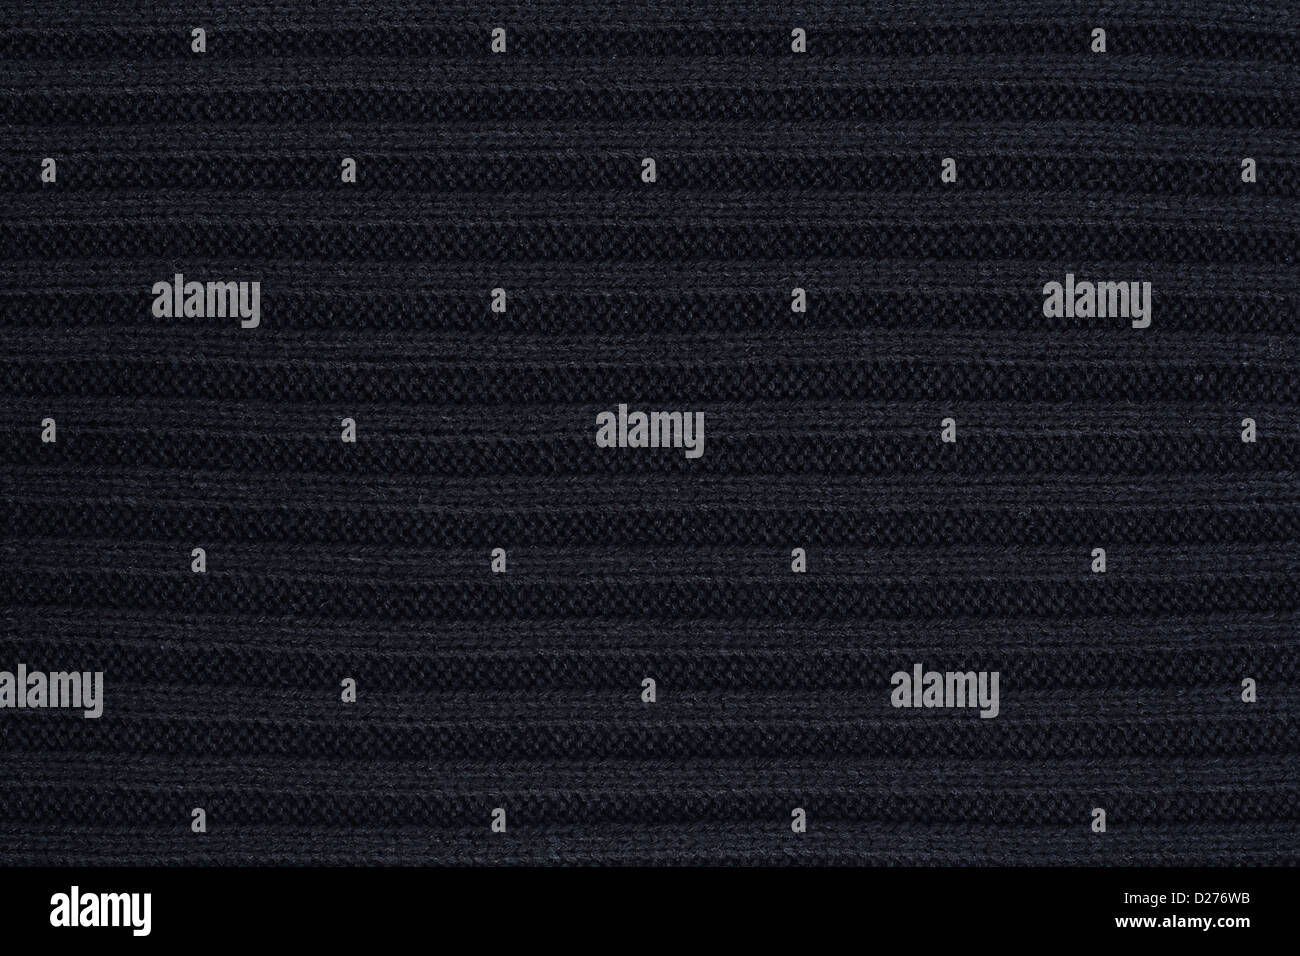 Woven wool background texture - Stock Image